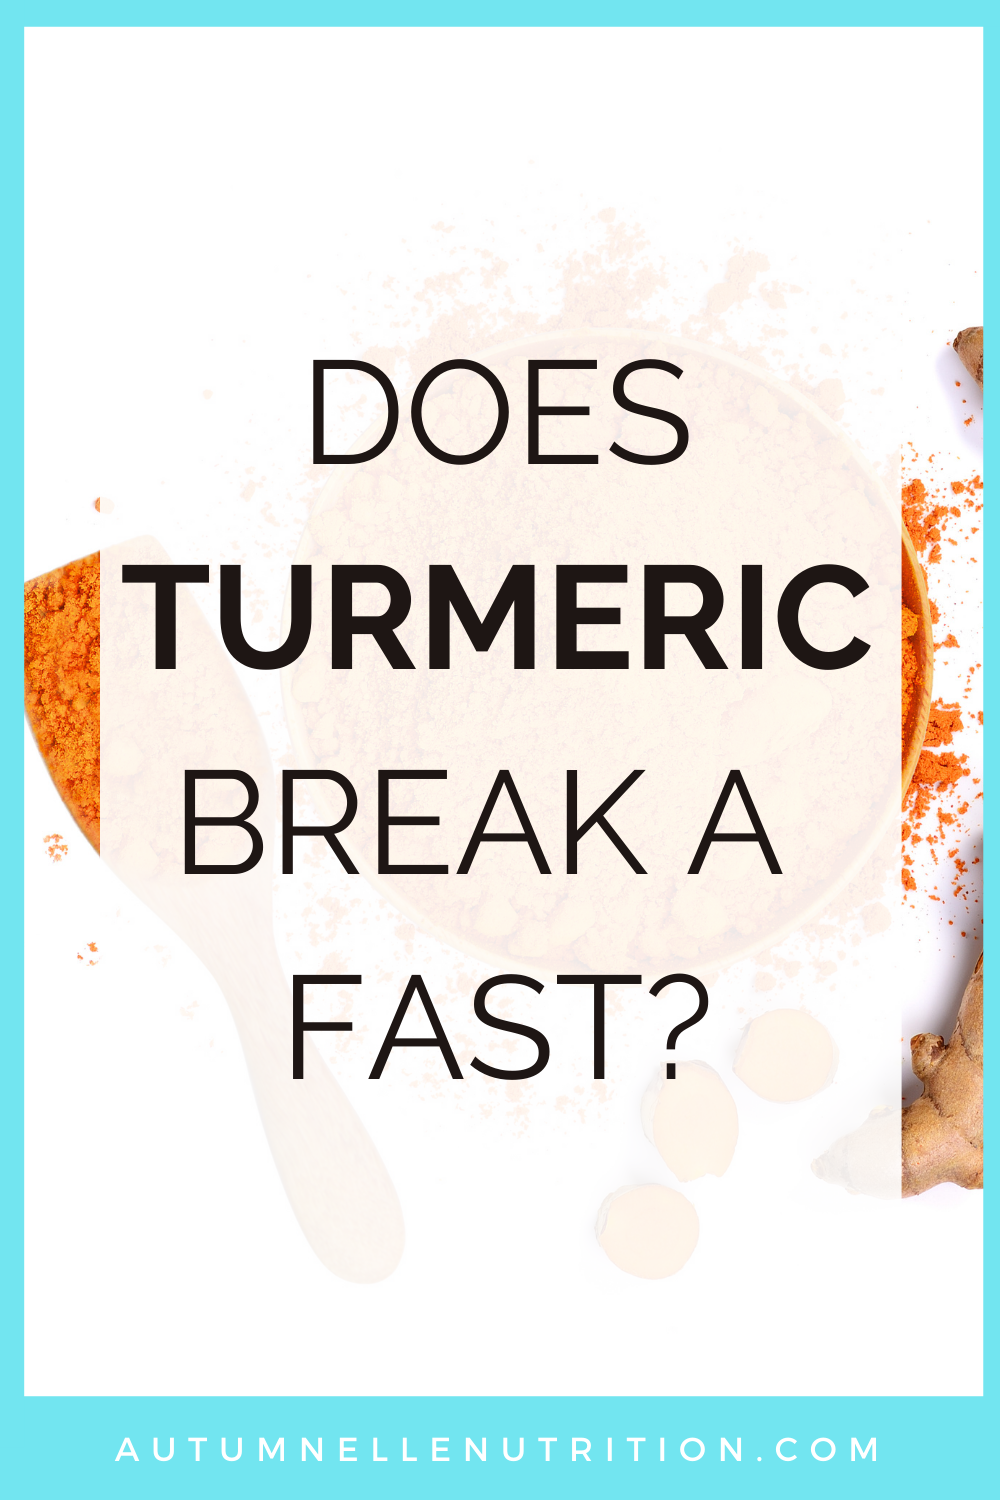 Does Turmeric Break A Fast?